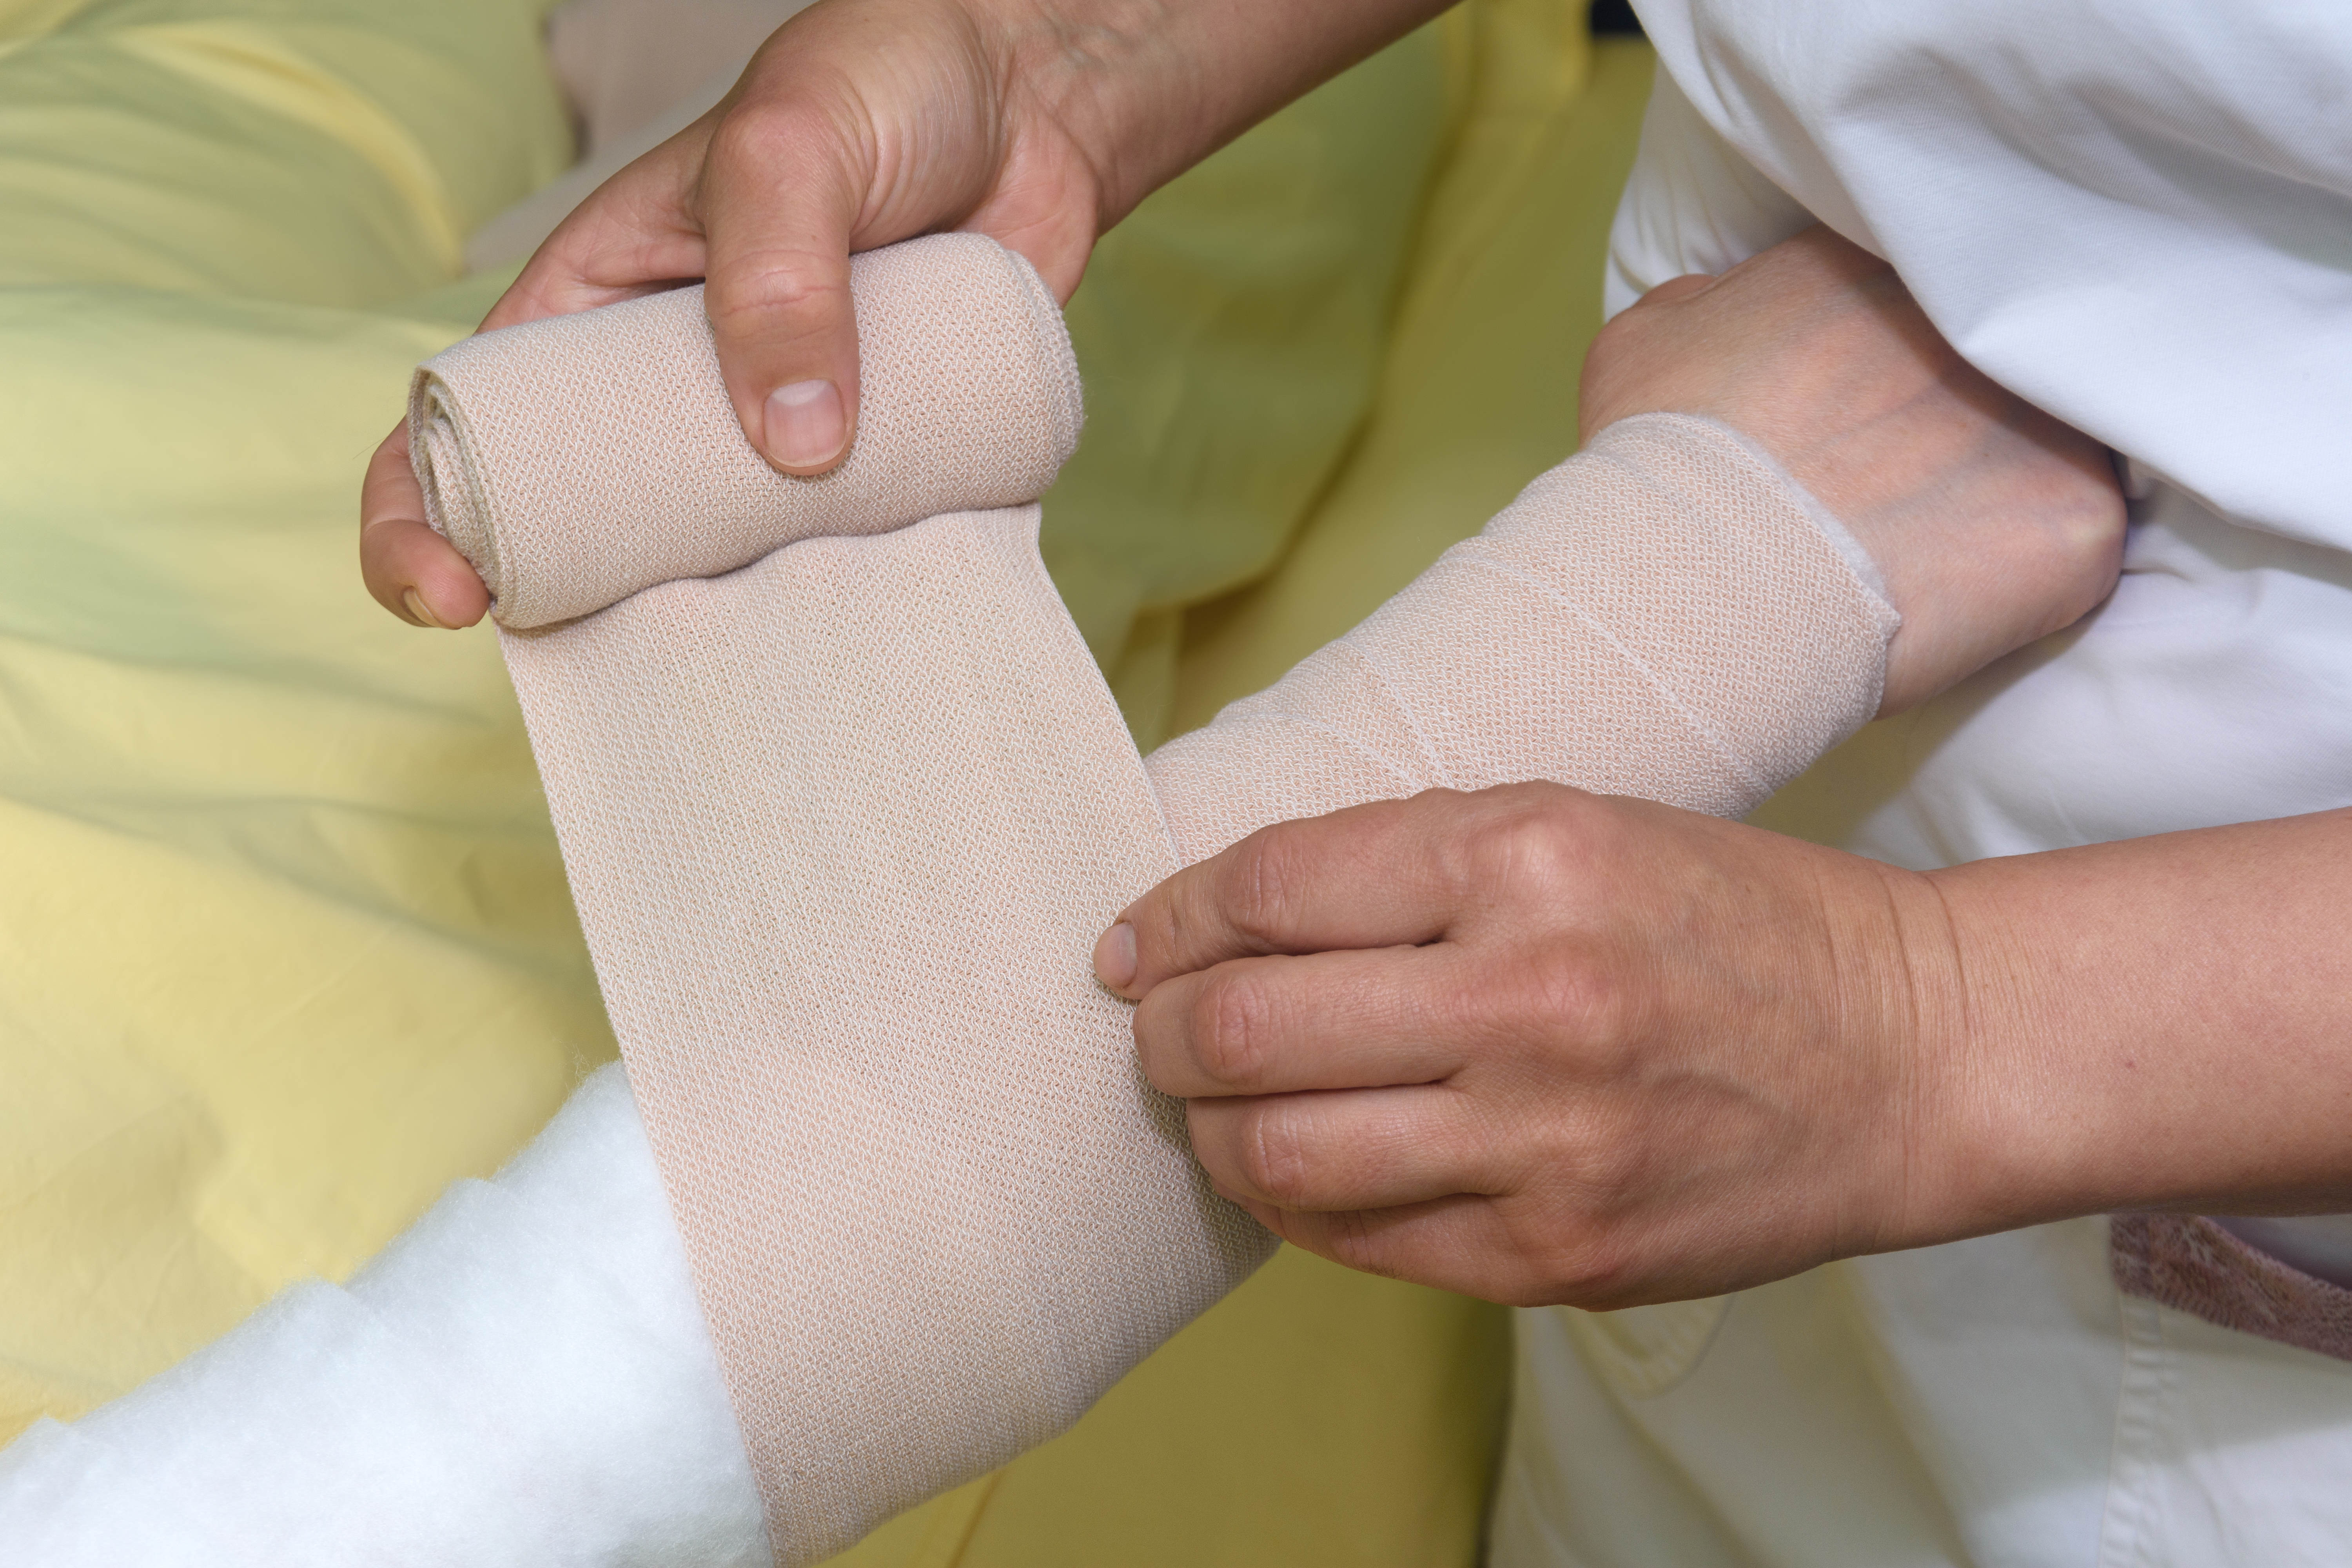 Lymphoedema management: bandaging an arm